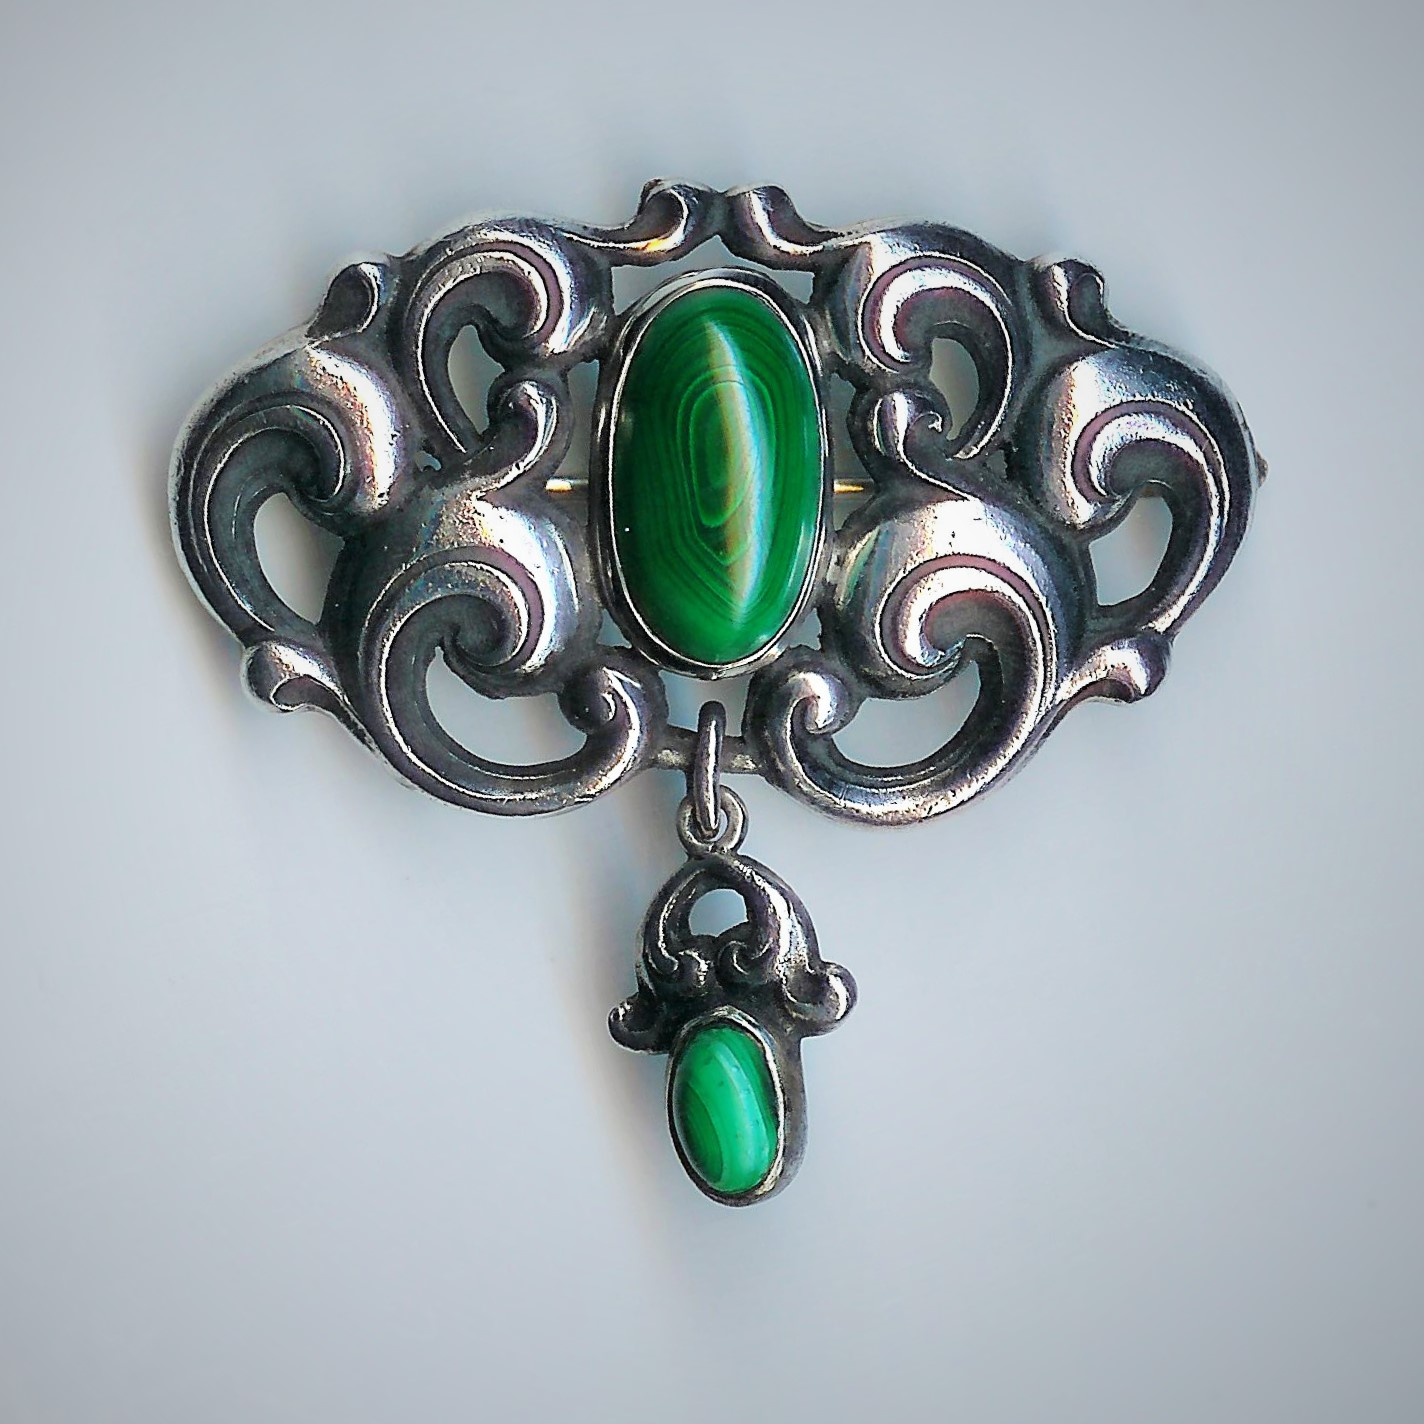 Old Silver & Green Malachite Brooch